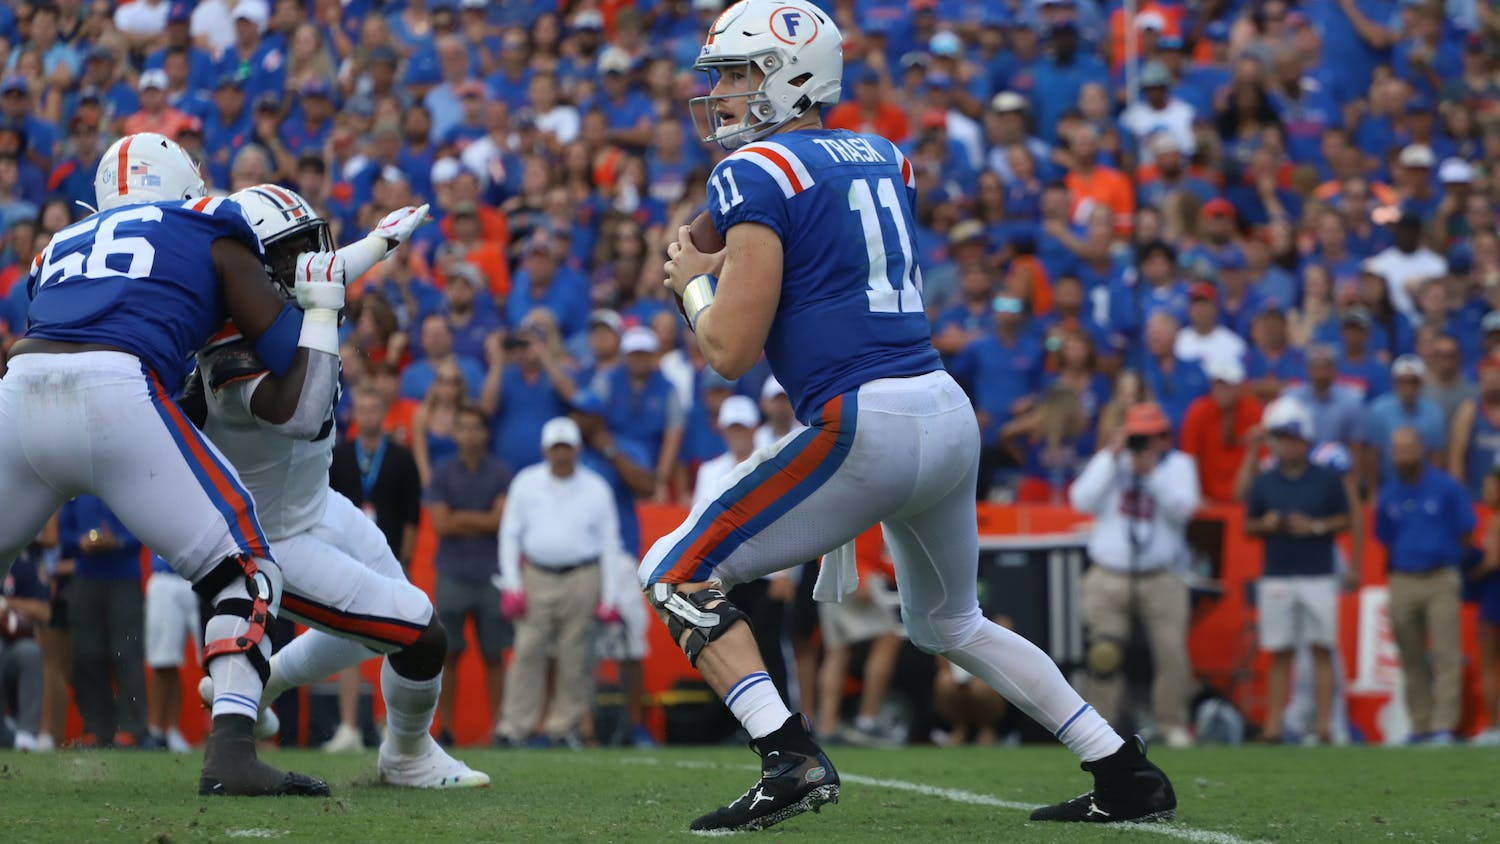 The redshirt senior was Florida's eighth finalist and would have been Florida's fourth winner. Photo from Florida-Auburn game in October 2019.